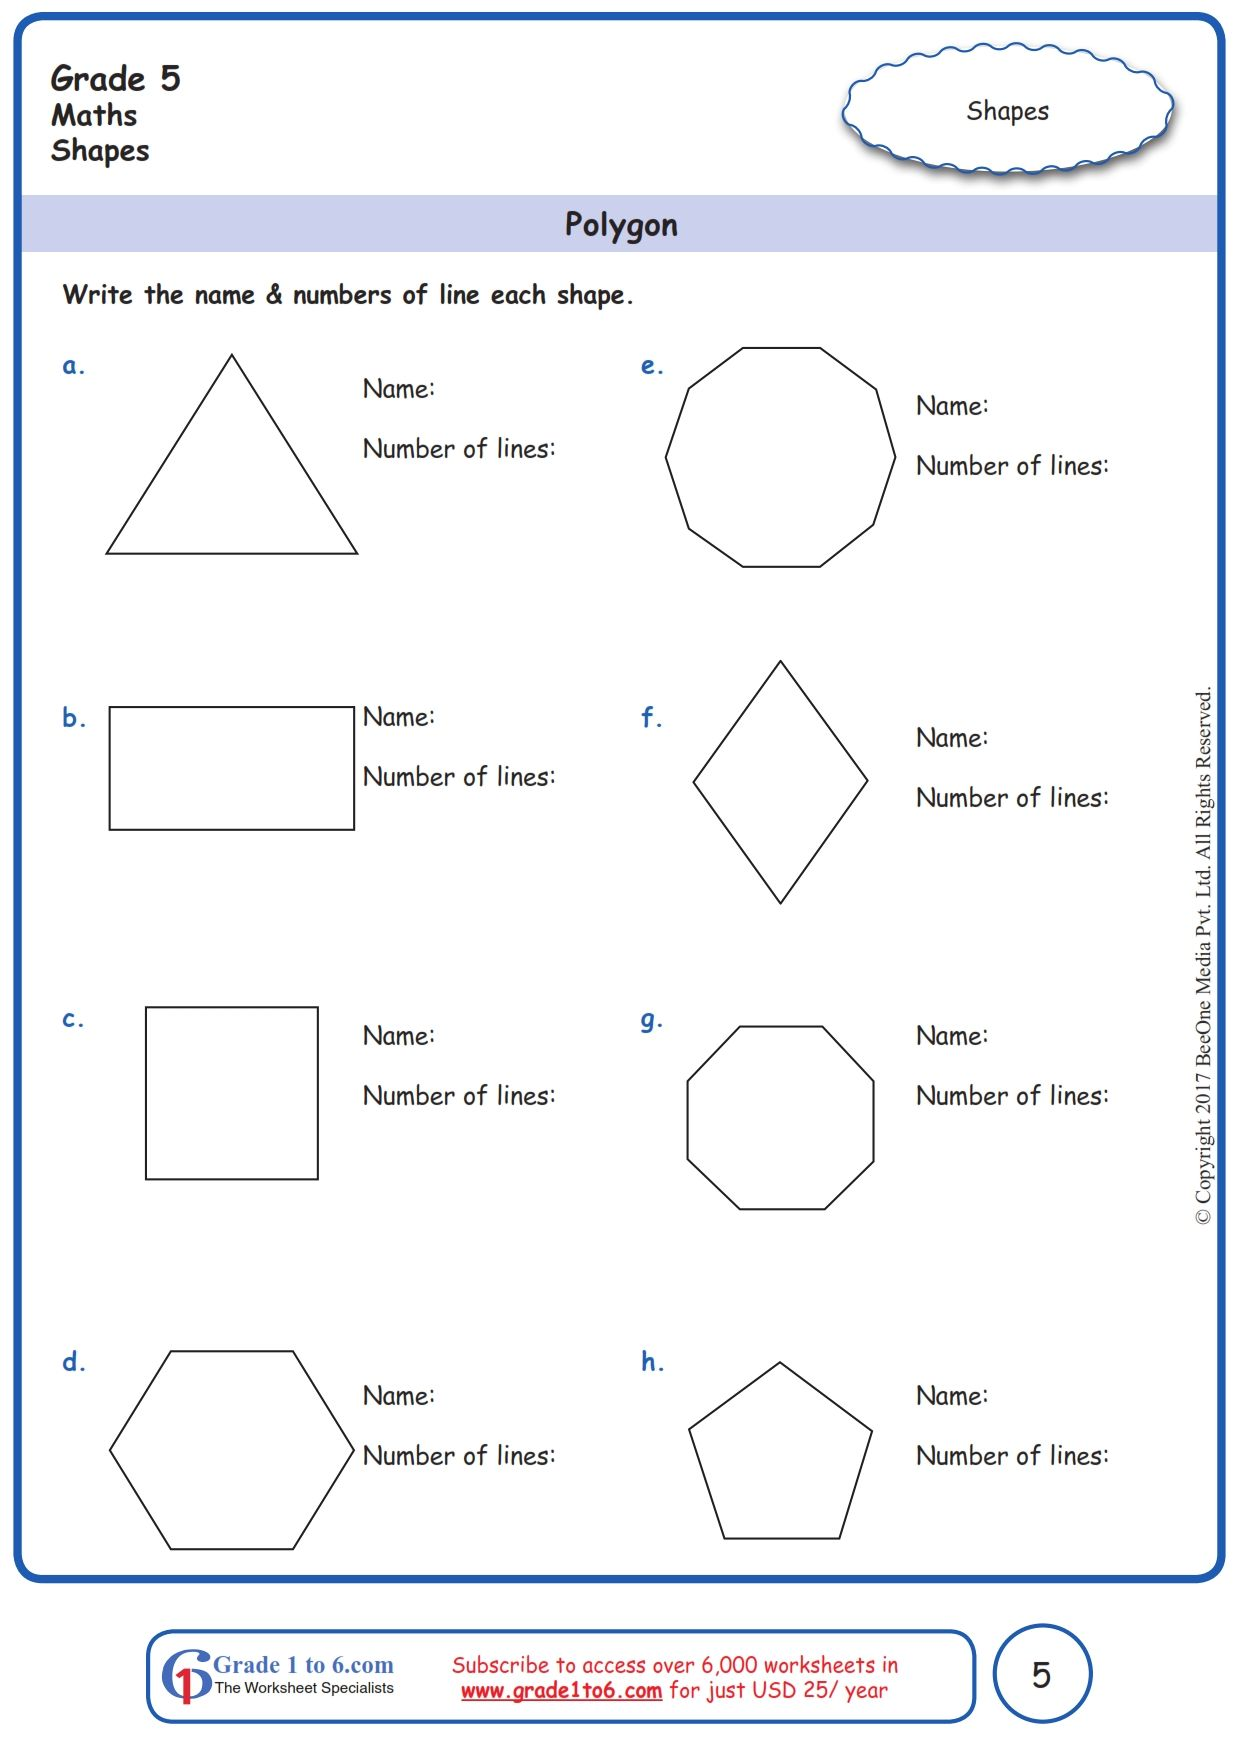 Worksheet Grade 5 Math Polygon In